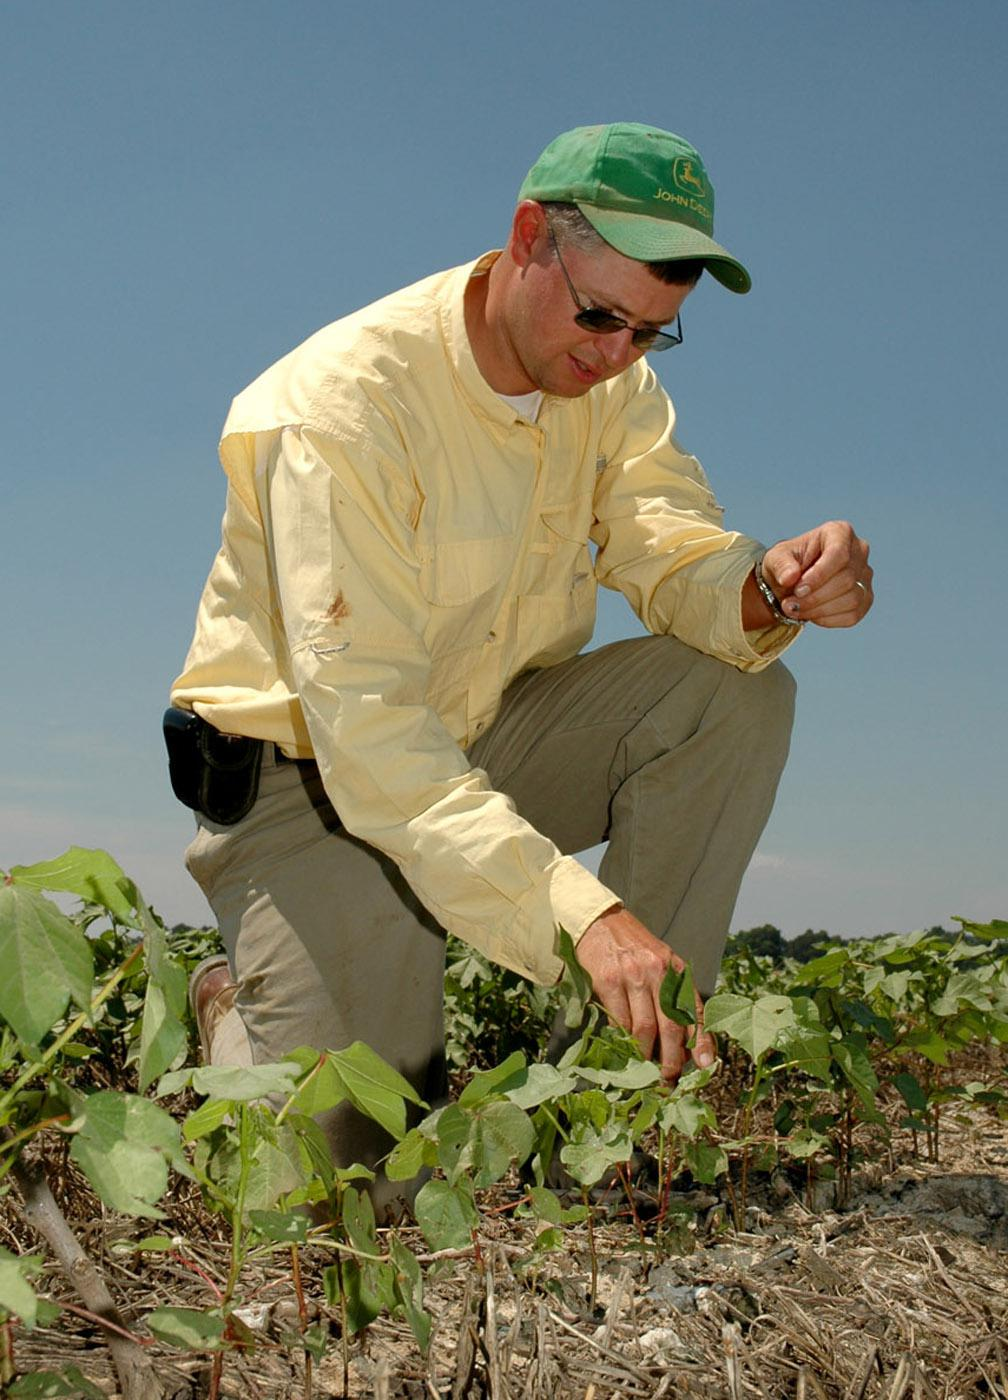 Coley Little Bailey of Yalobusha County checks to see how some of his cotton is coping with the hot, dry conditions in mid-June. Bailey planted wheat after last fall's cotton harvest to assist the 2006 cotton crop. Bailey applies a herbicide a couple of weeks before spring planting to kill the wheat. The cover crop then provides wind protection for young cotton, and its massive root system helps the soil retain moisture longer during droughts.